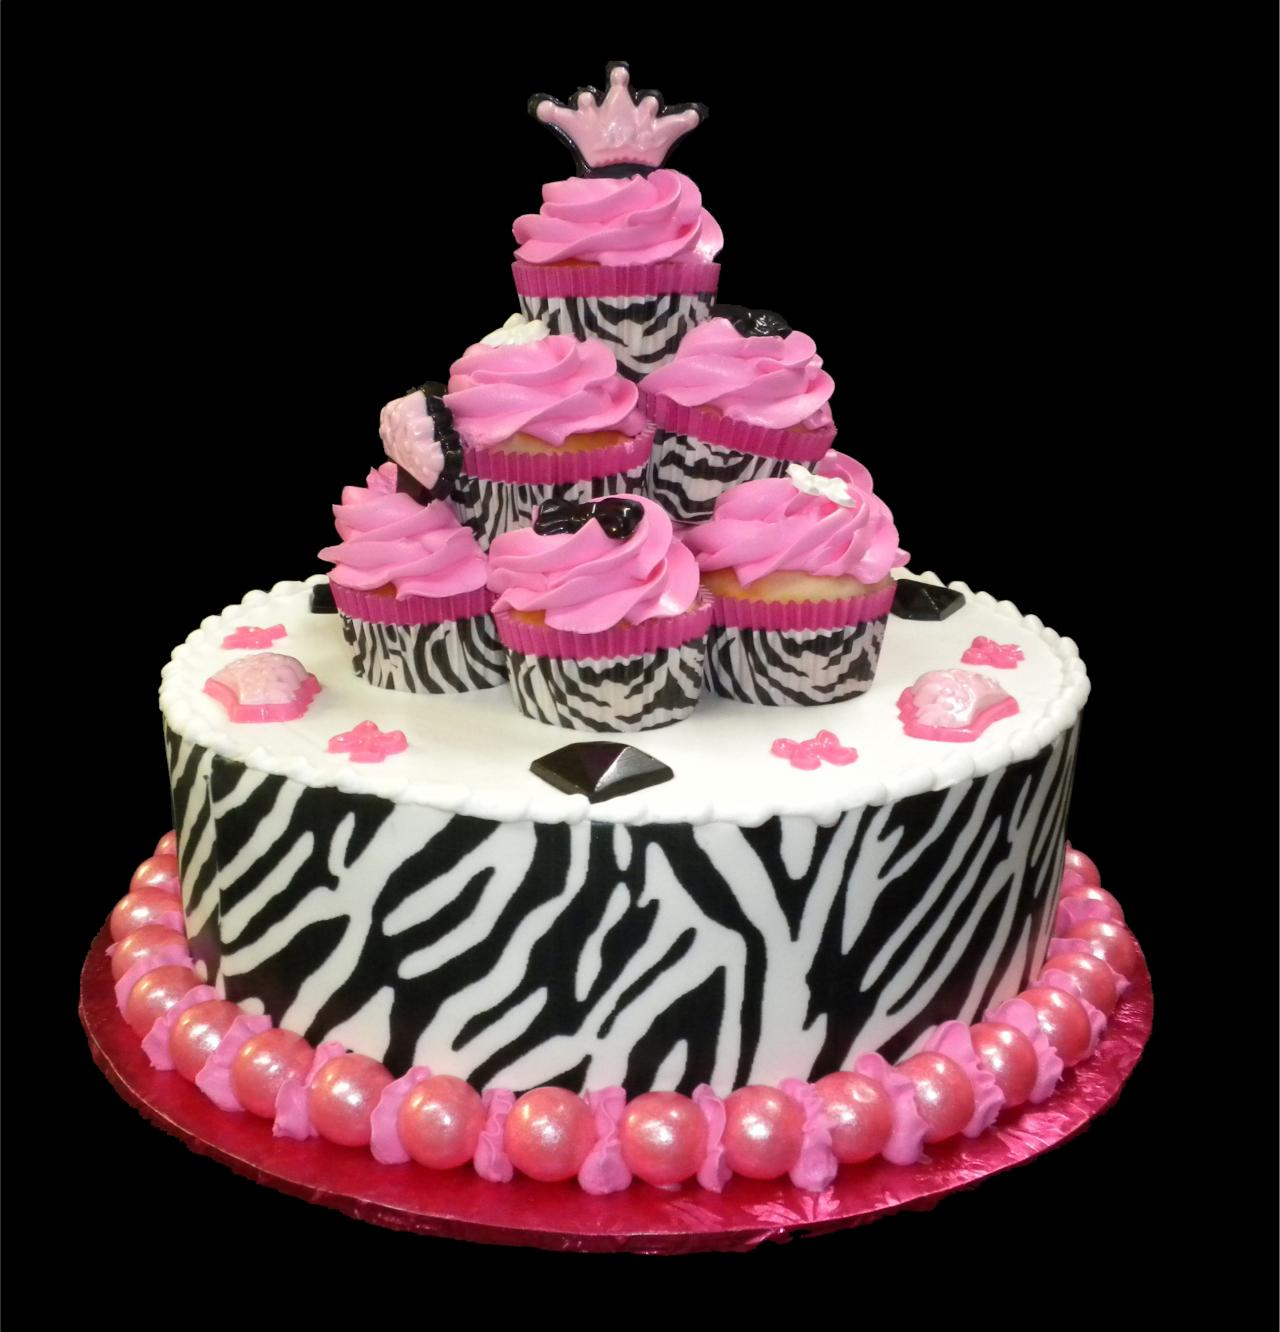 Black And White Birthday Cake With Jewels